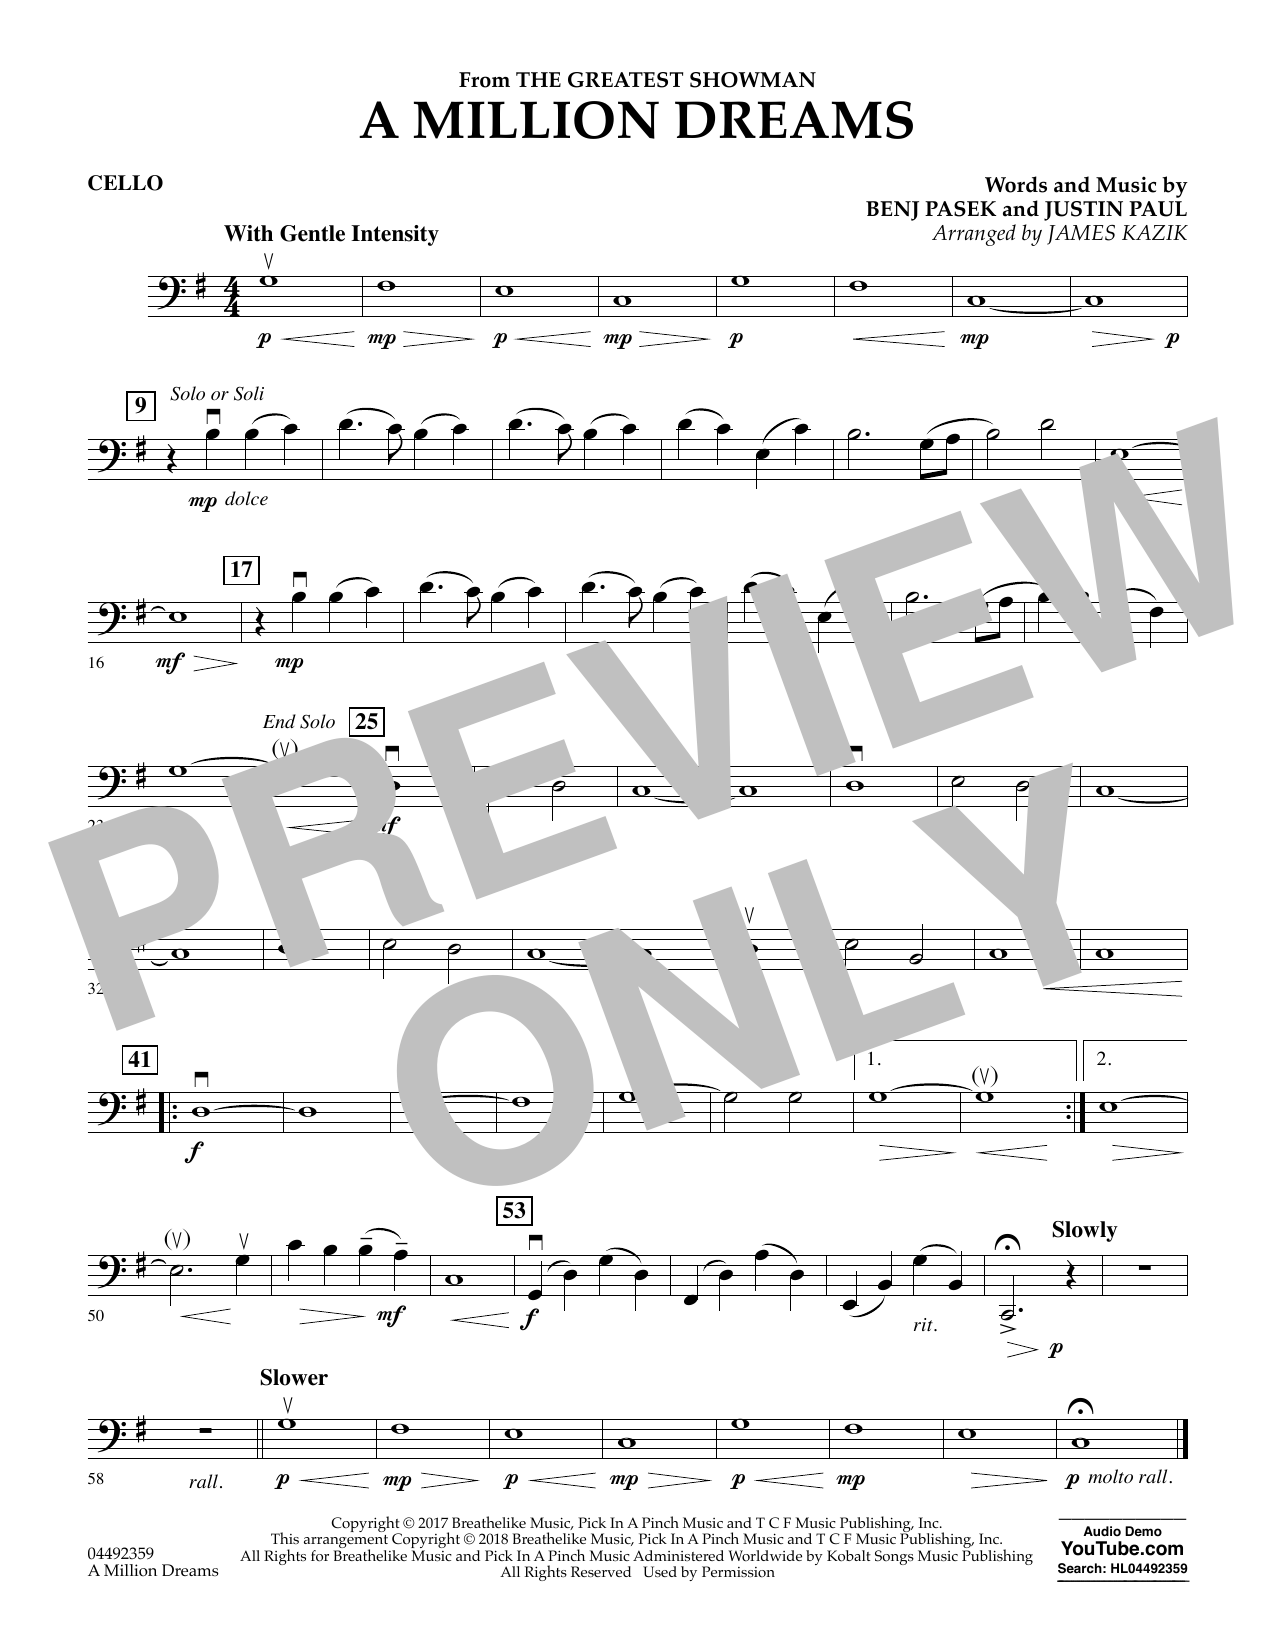 A Million Dreams (from The Greatest Showman) (arr  James Kazik) - Cello by  Pasek & Paul Orchestra Digital Sheet Music